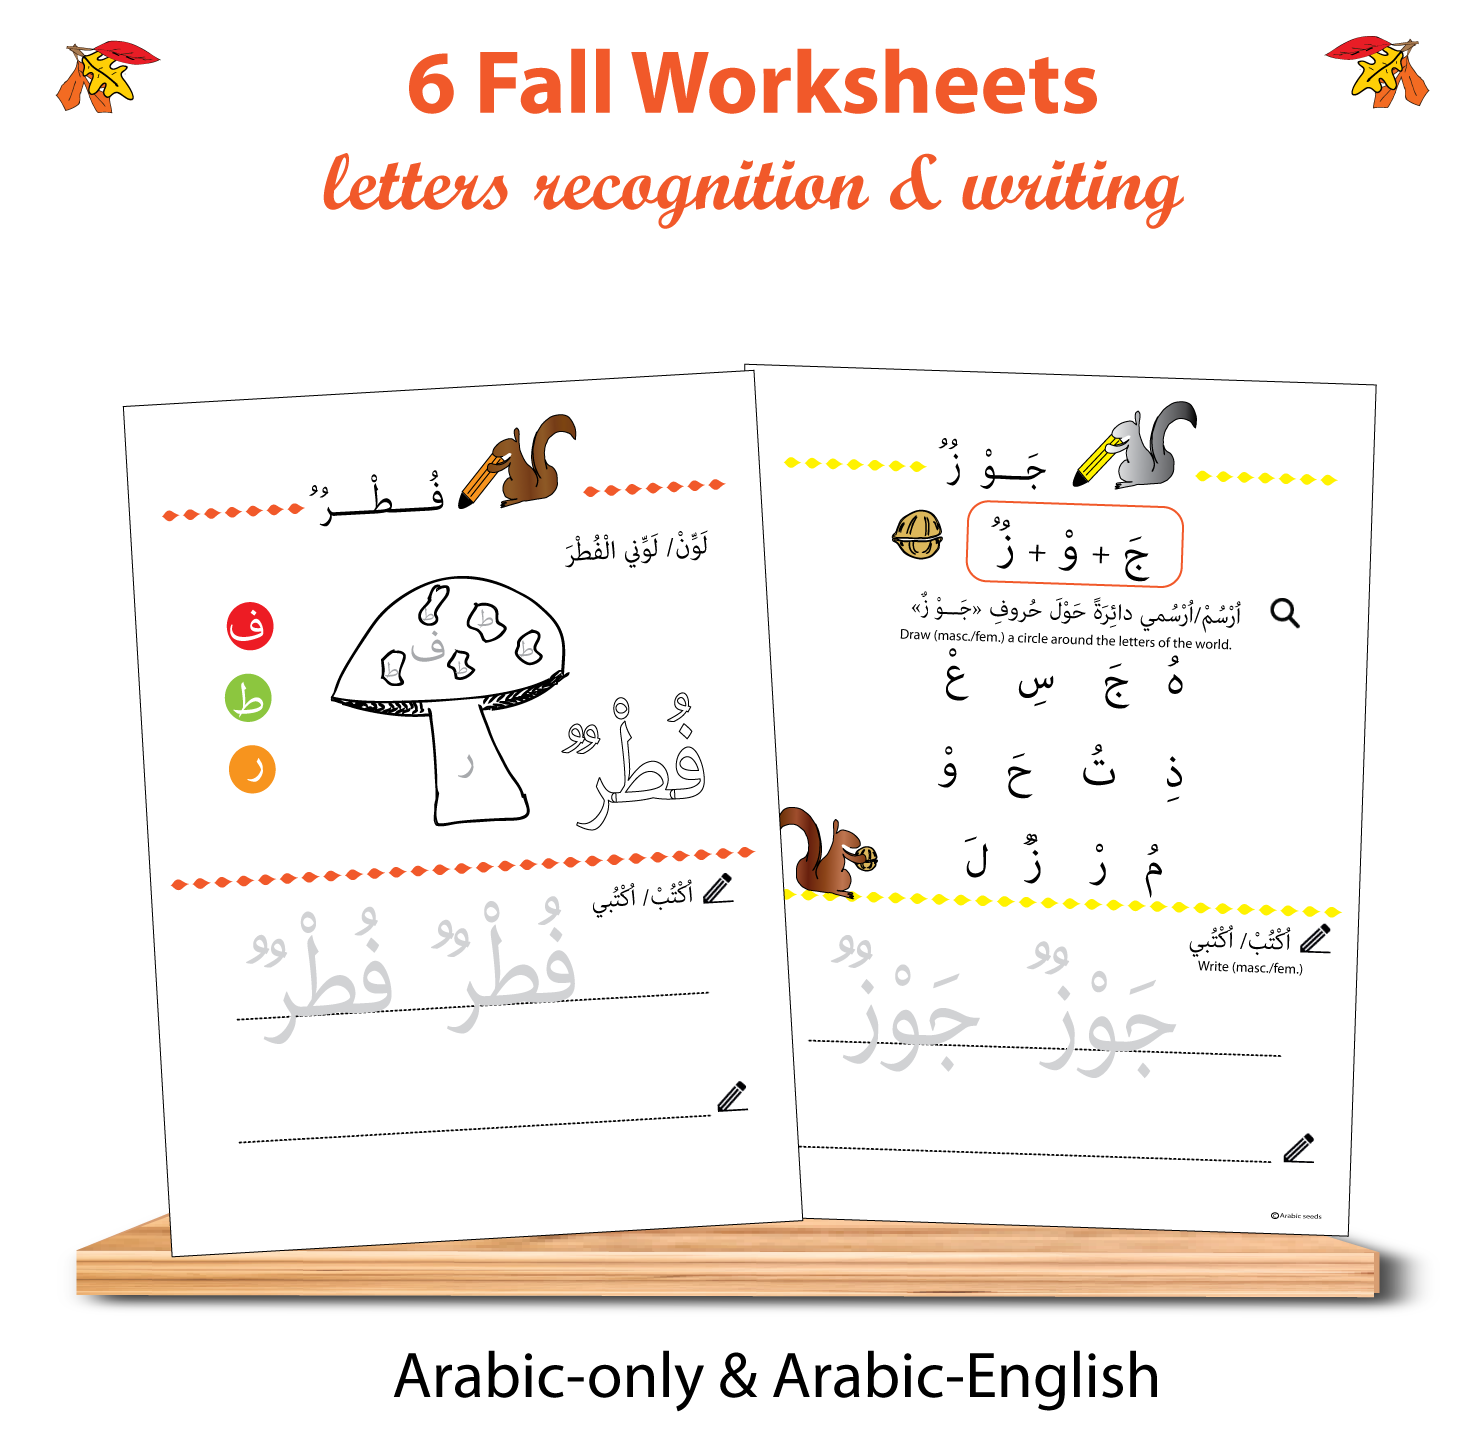 Arabic Handwritten Text Recognition and Writer Identification - GRIN